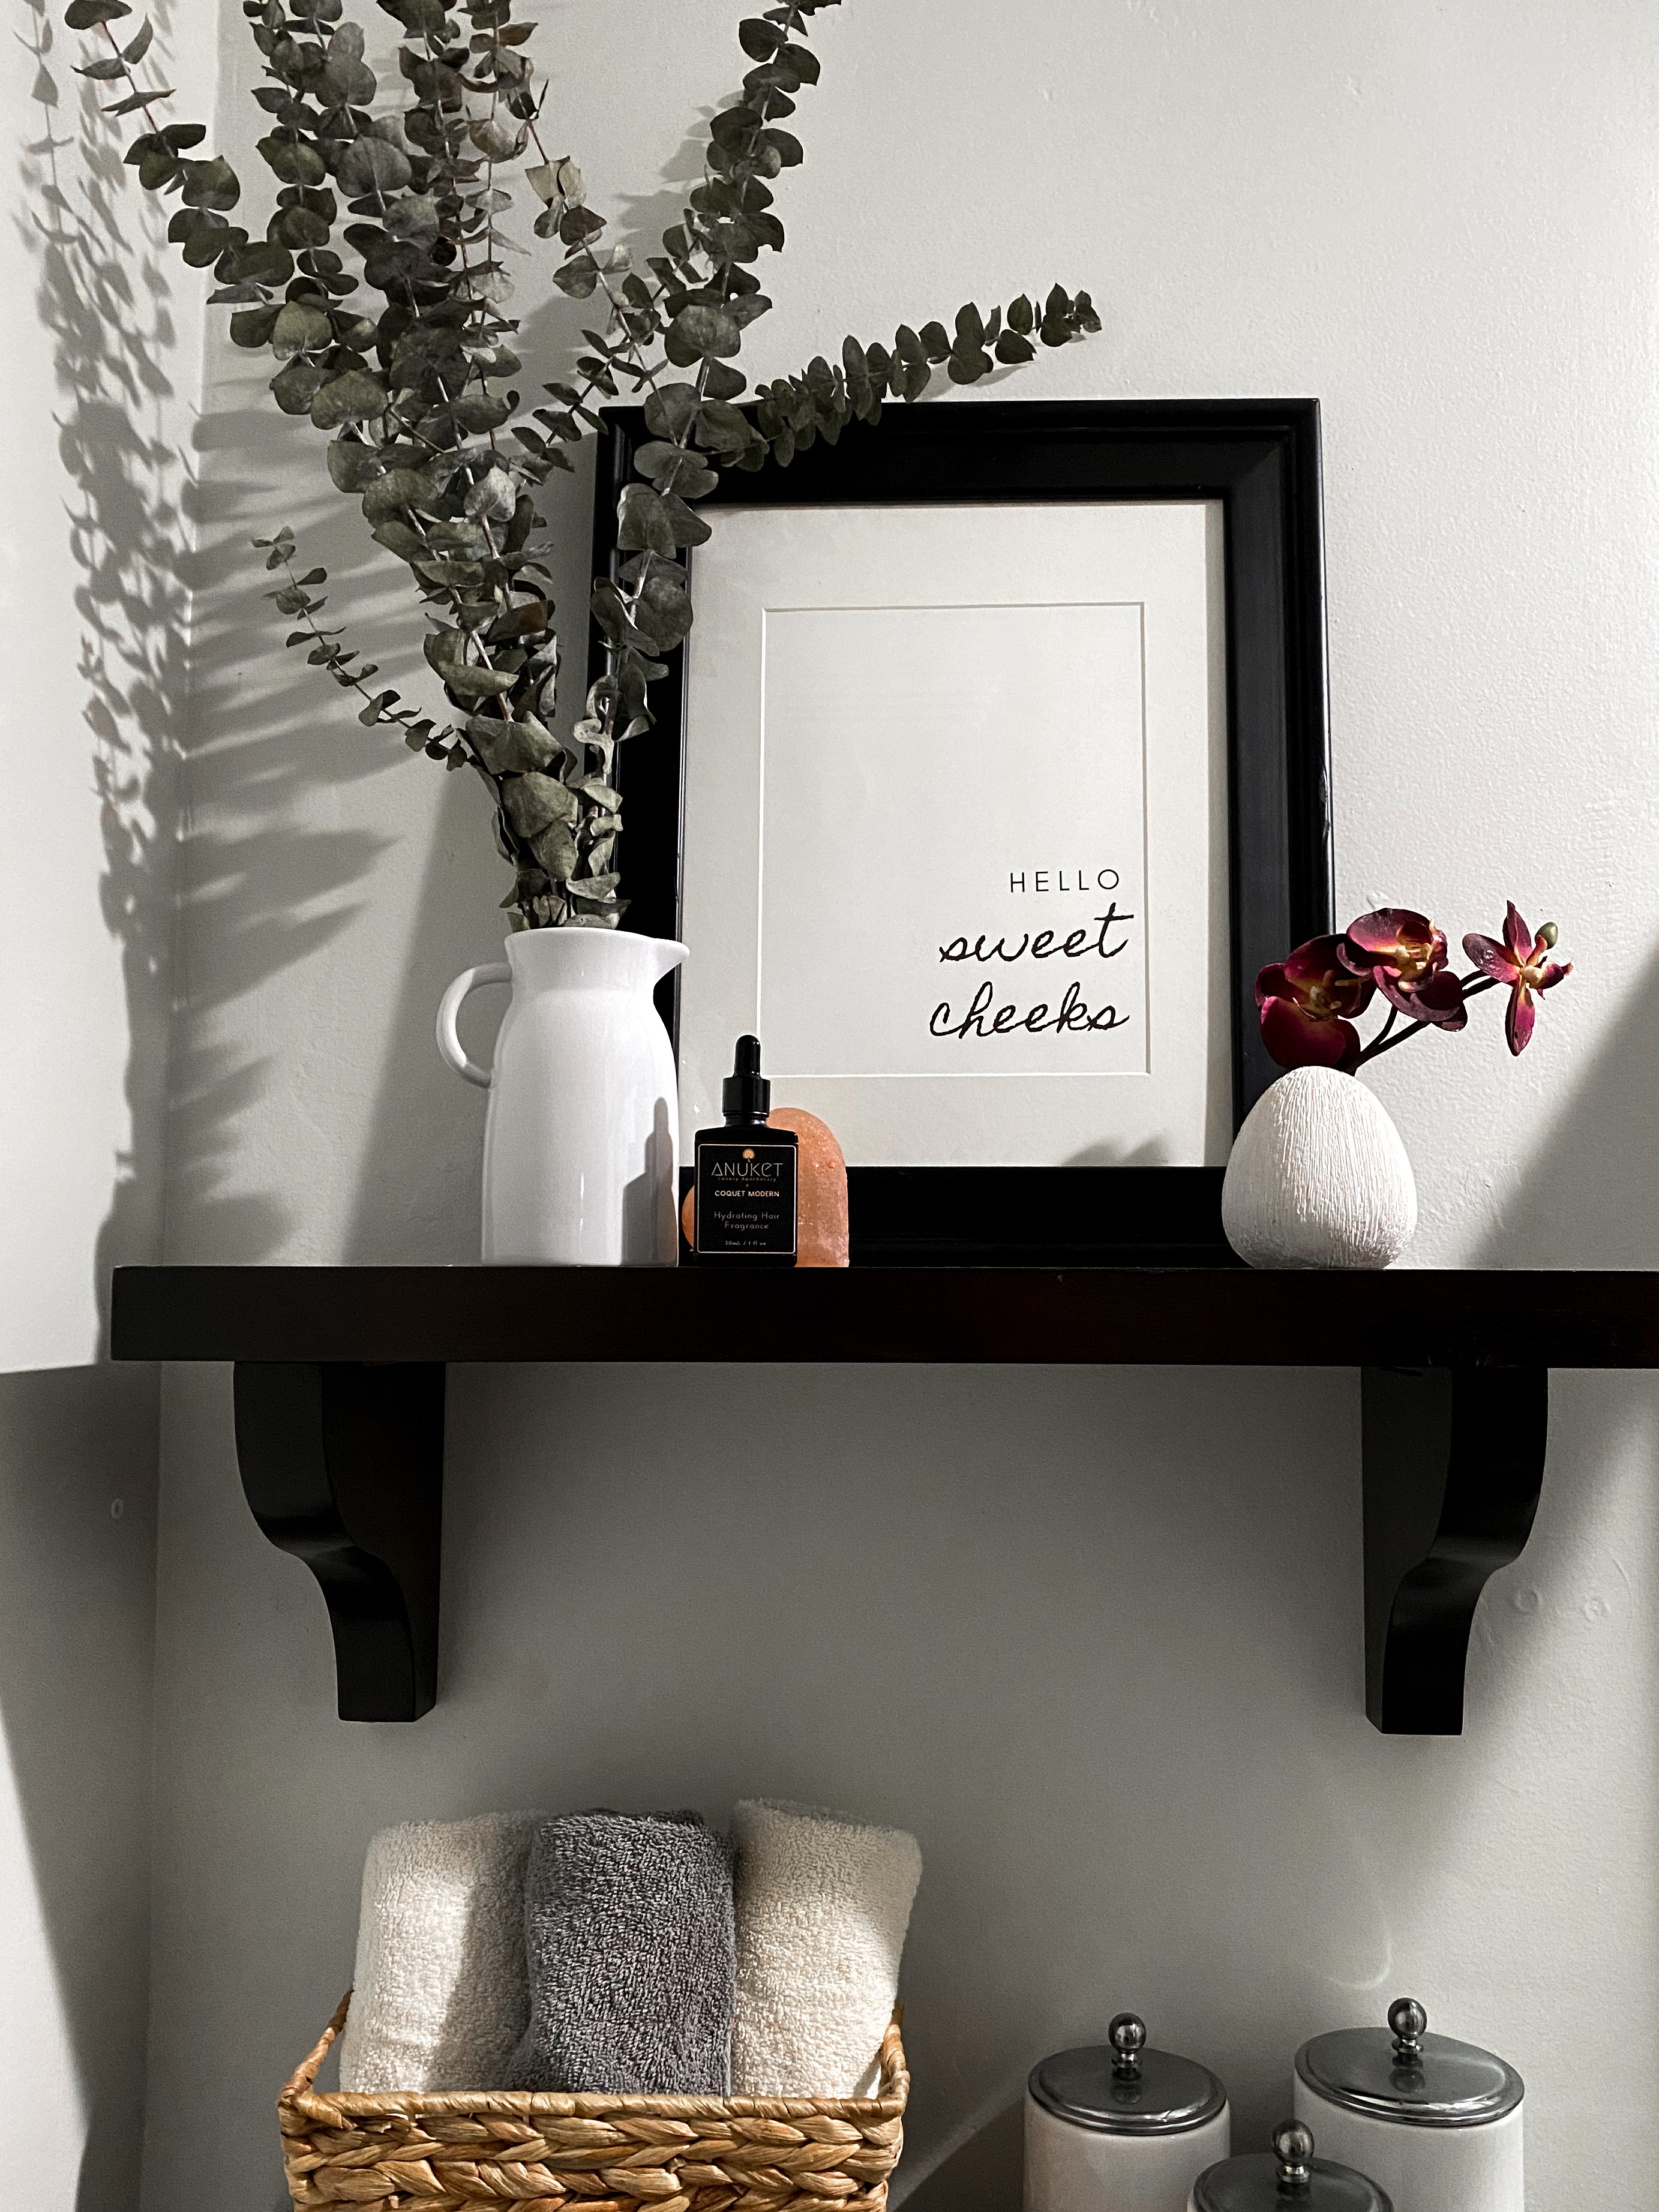 Bottle of Hydrating Hair Fragrance on bathroom shelf with eucalyptus and picture frame